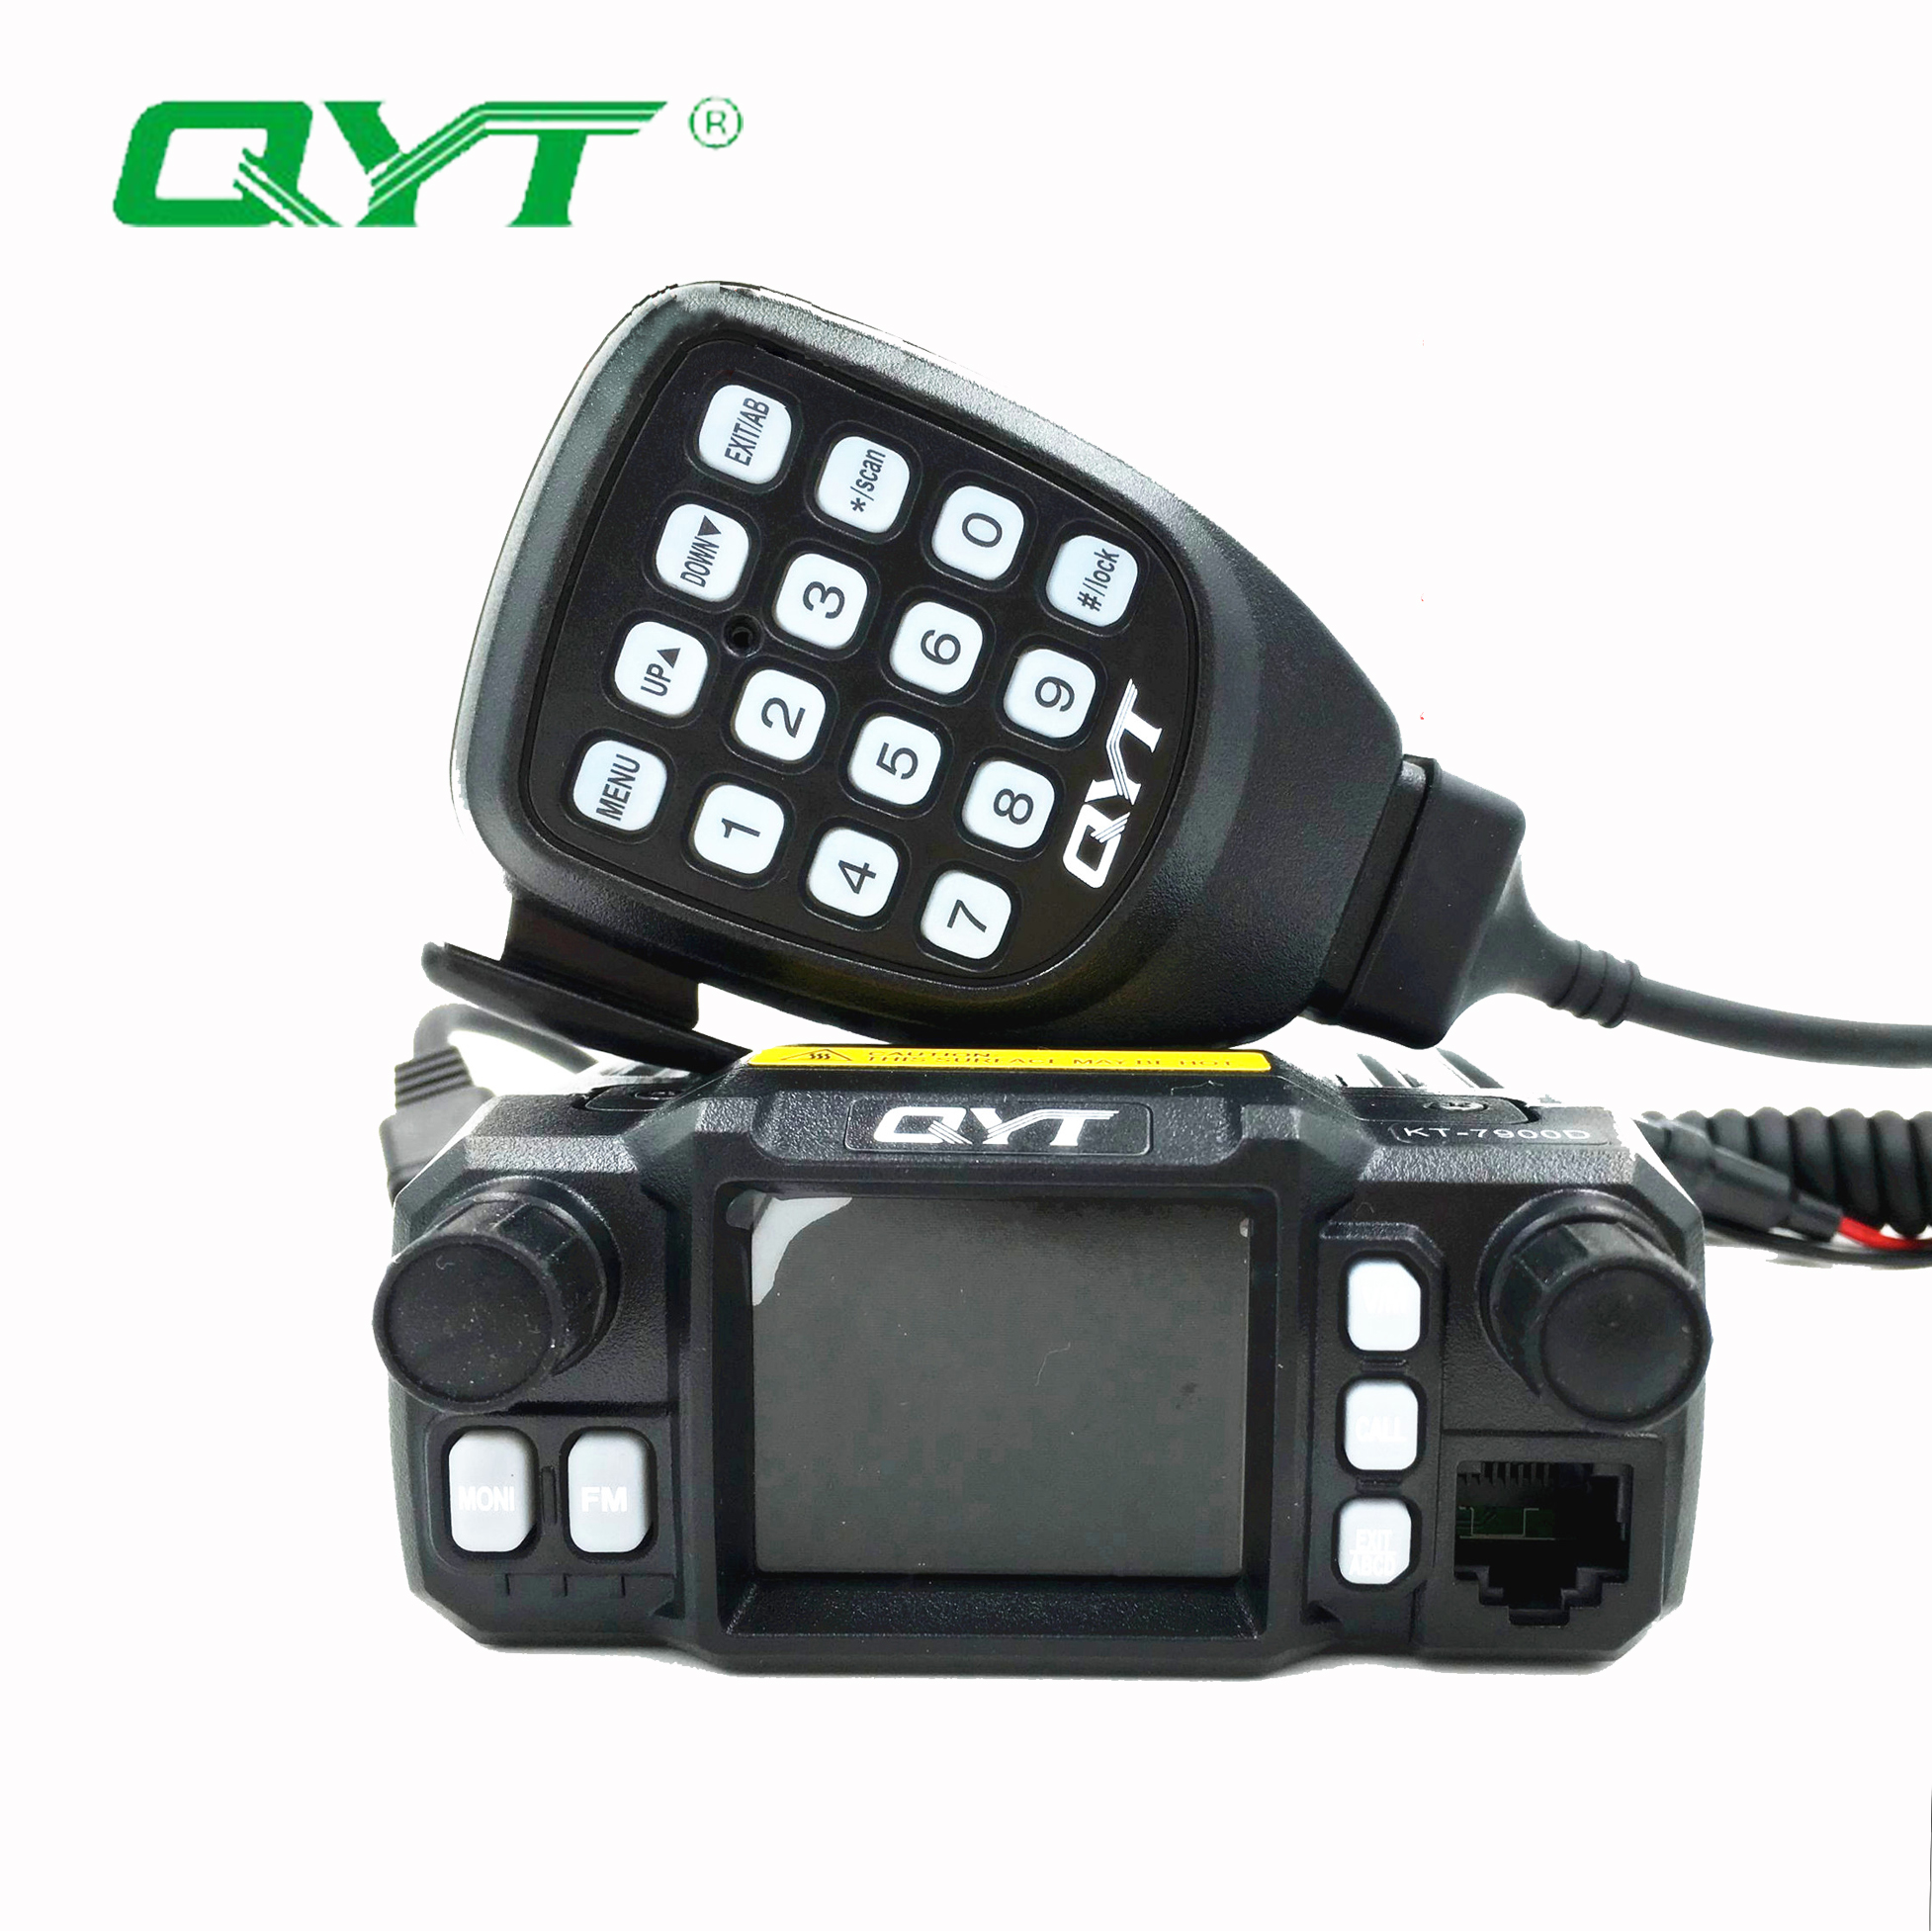 QYT KT-<font><b>7900D</b></font> Walkie Talkie 25W 144/220/350/440MHZ Quad Band Mobile Radio Car Mobile Radio Suitable for Baofeng UV-82 UV-5R UV-82 image